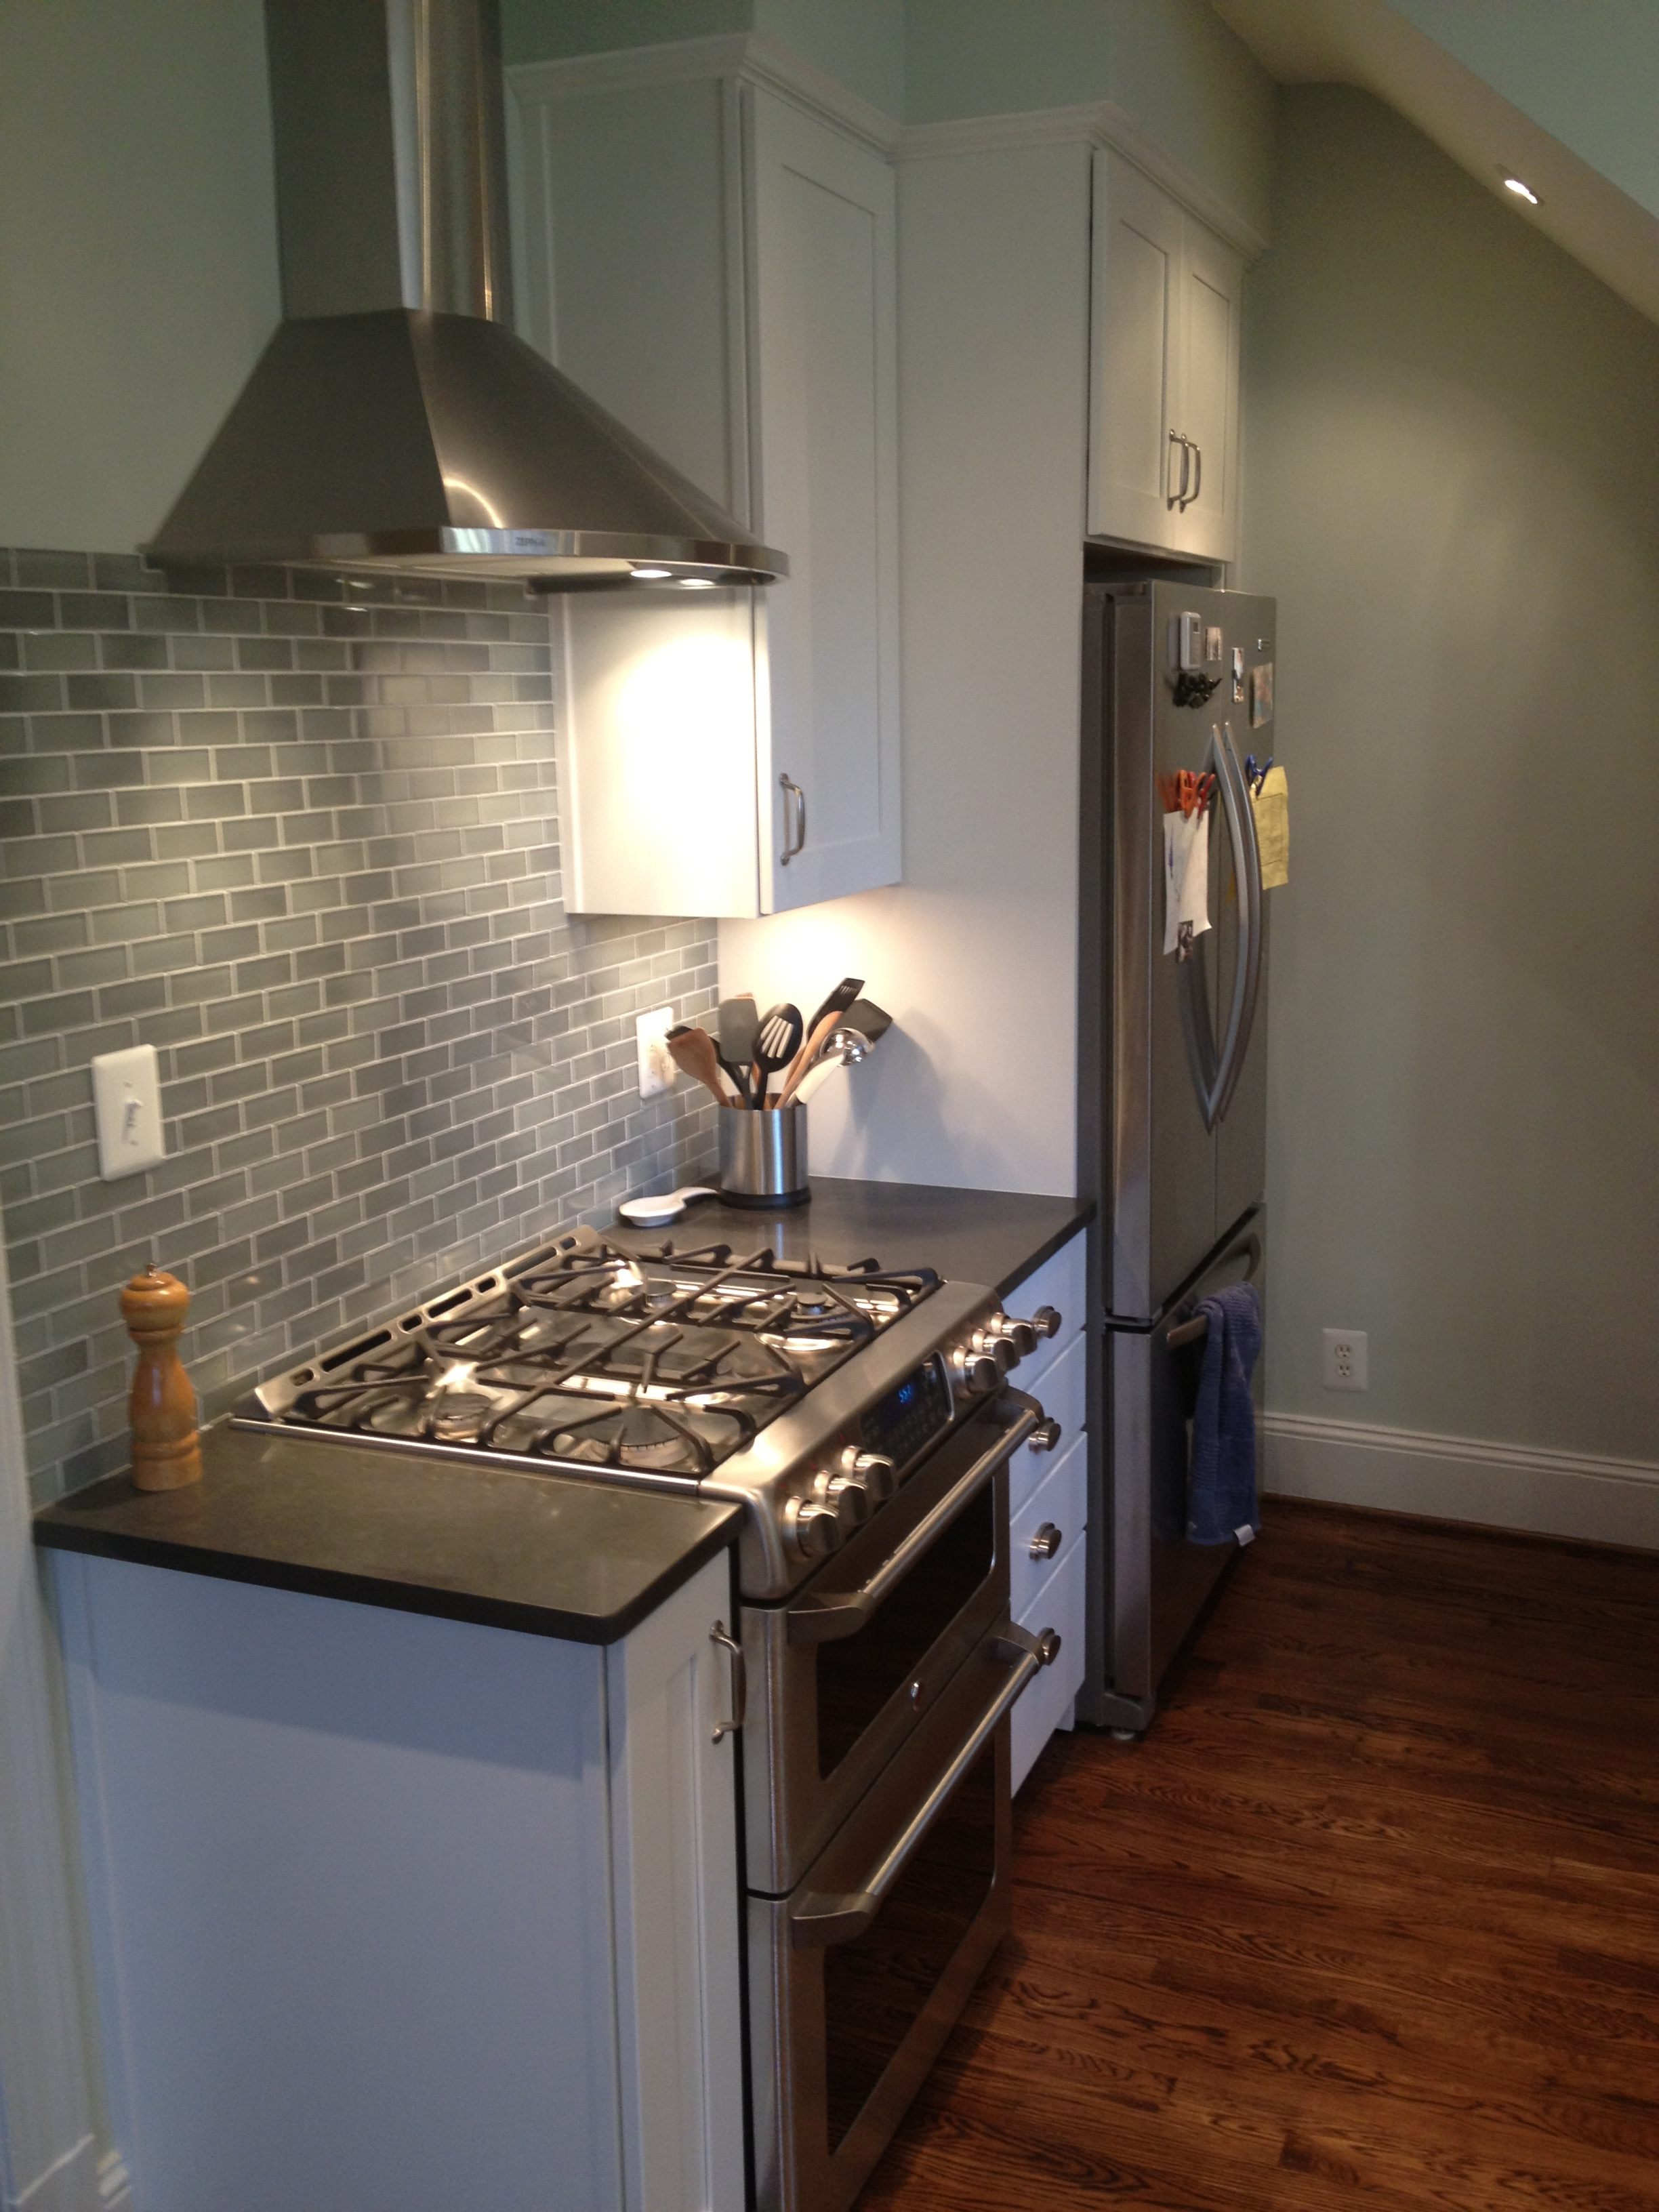 New range with hood and french-door refrigerator